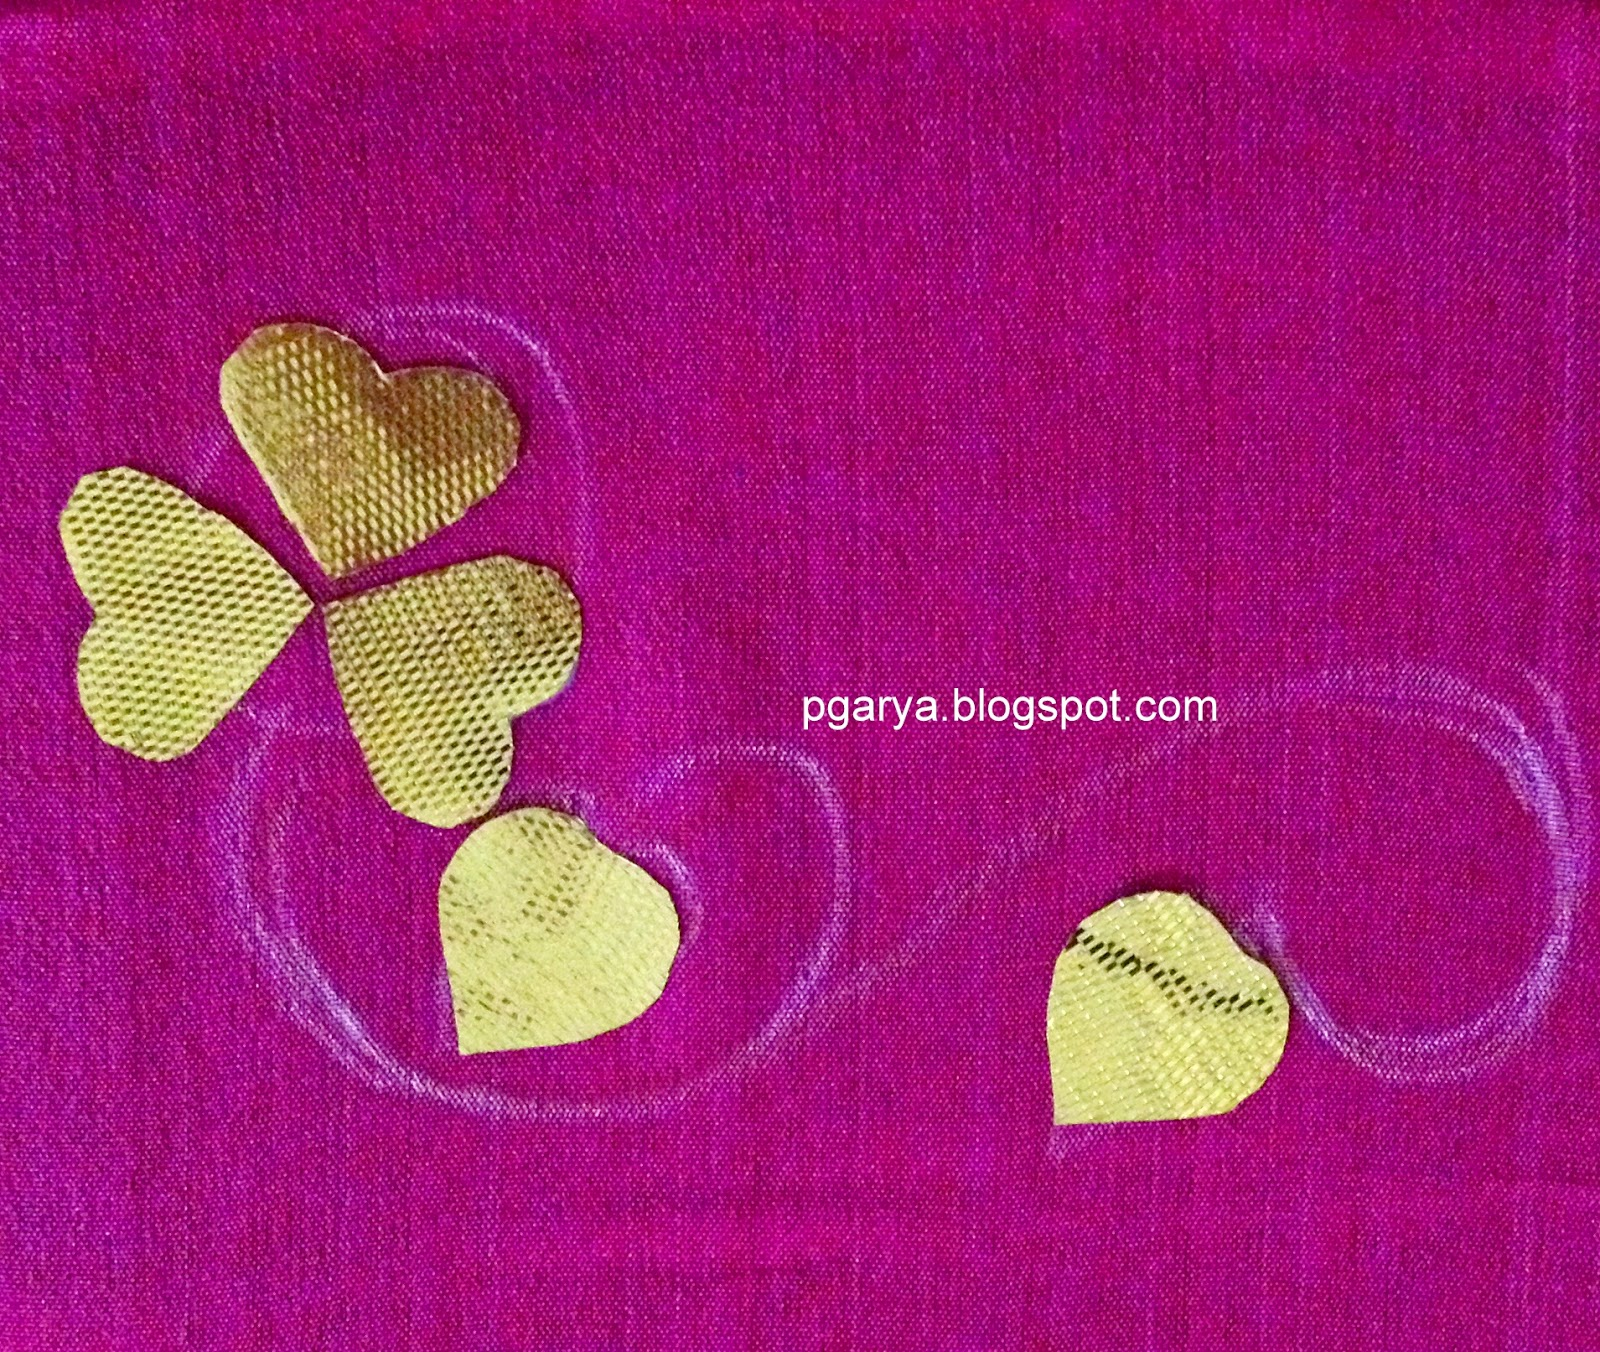 Gota with heart shape stuch on fabric with fabric glue